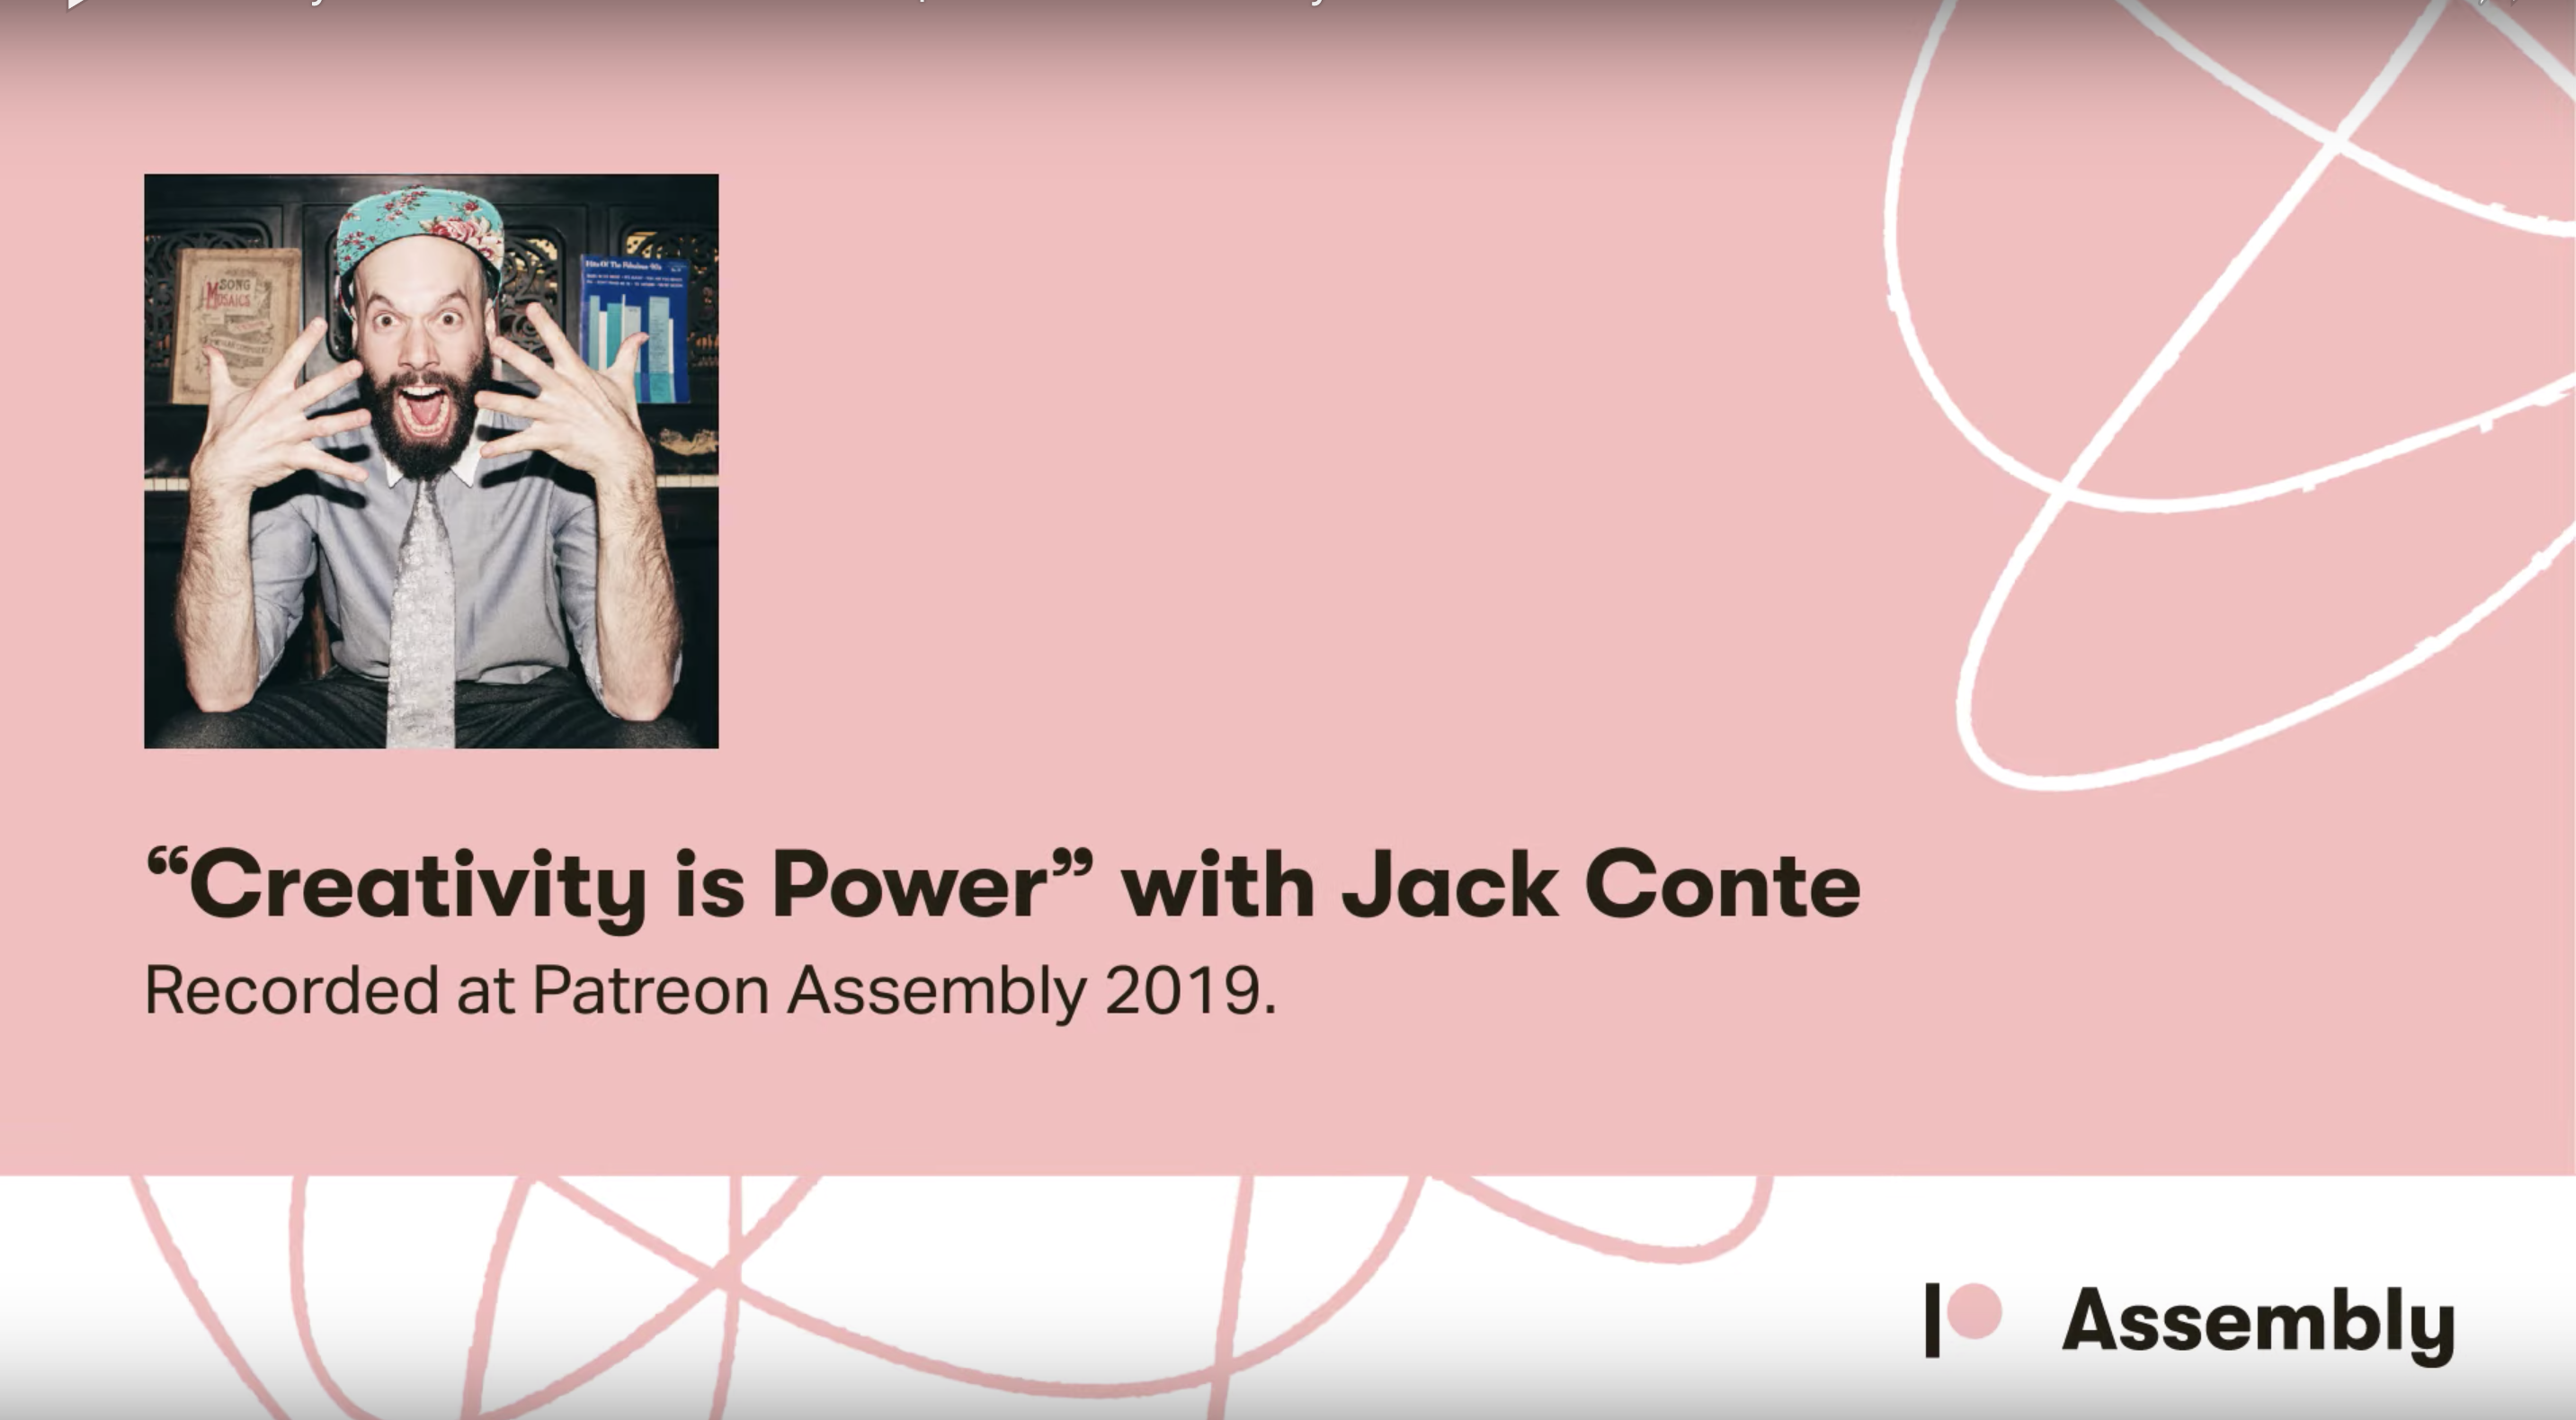 Creativity is Power with Jack Conte